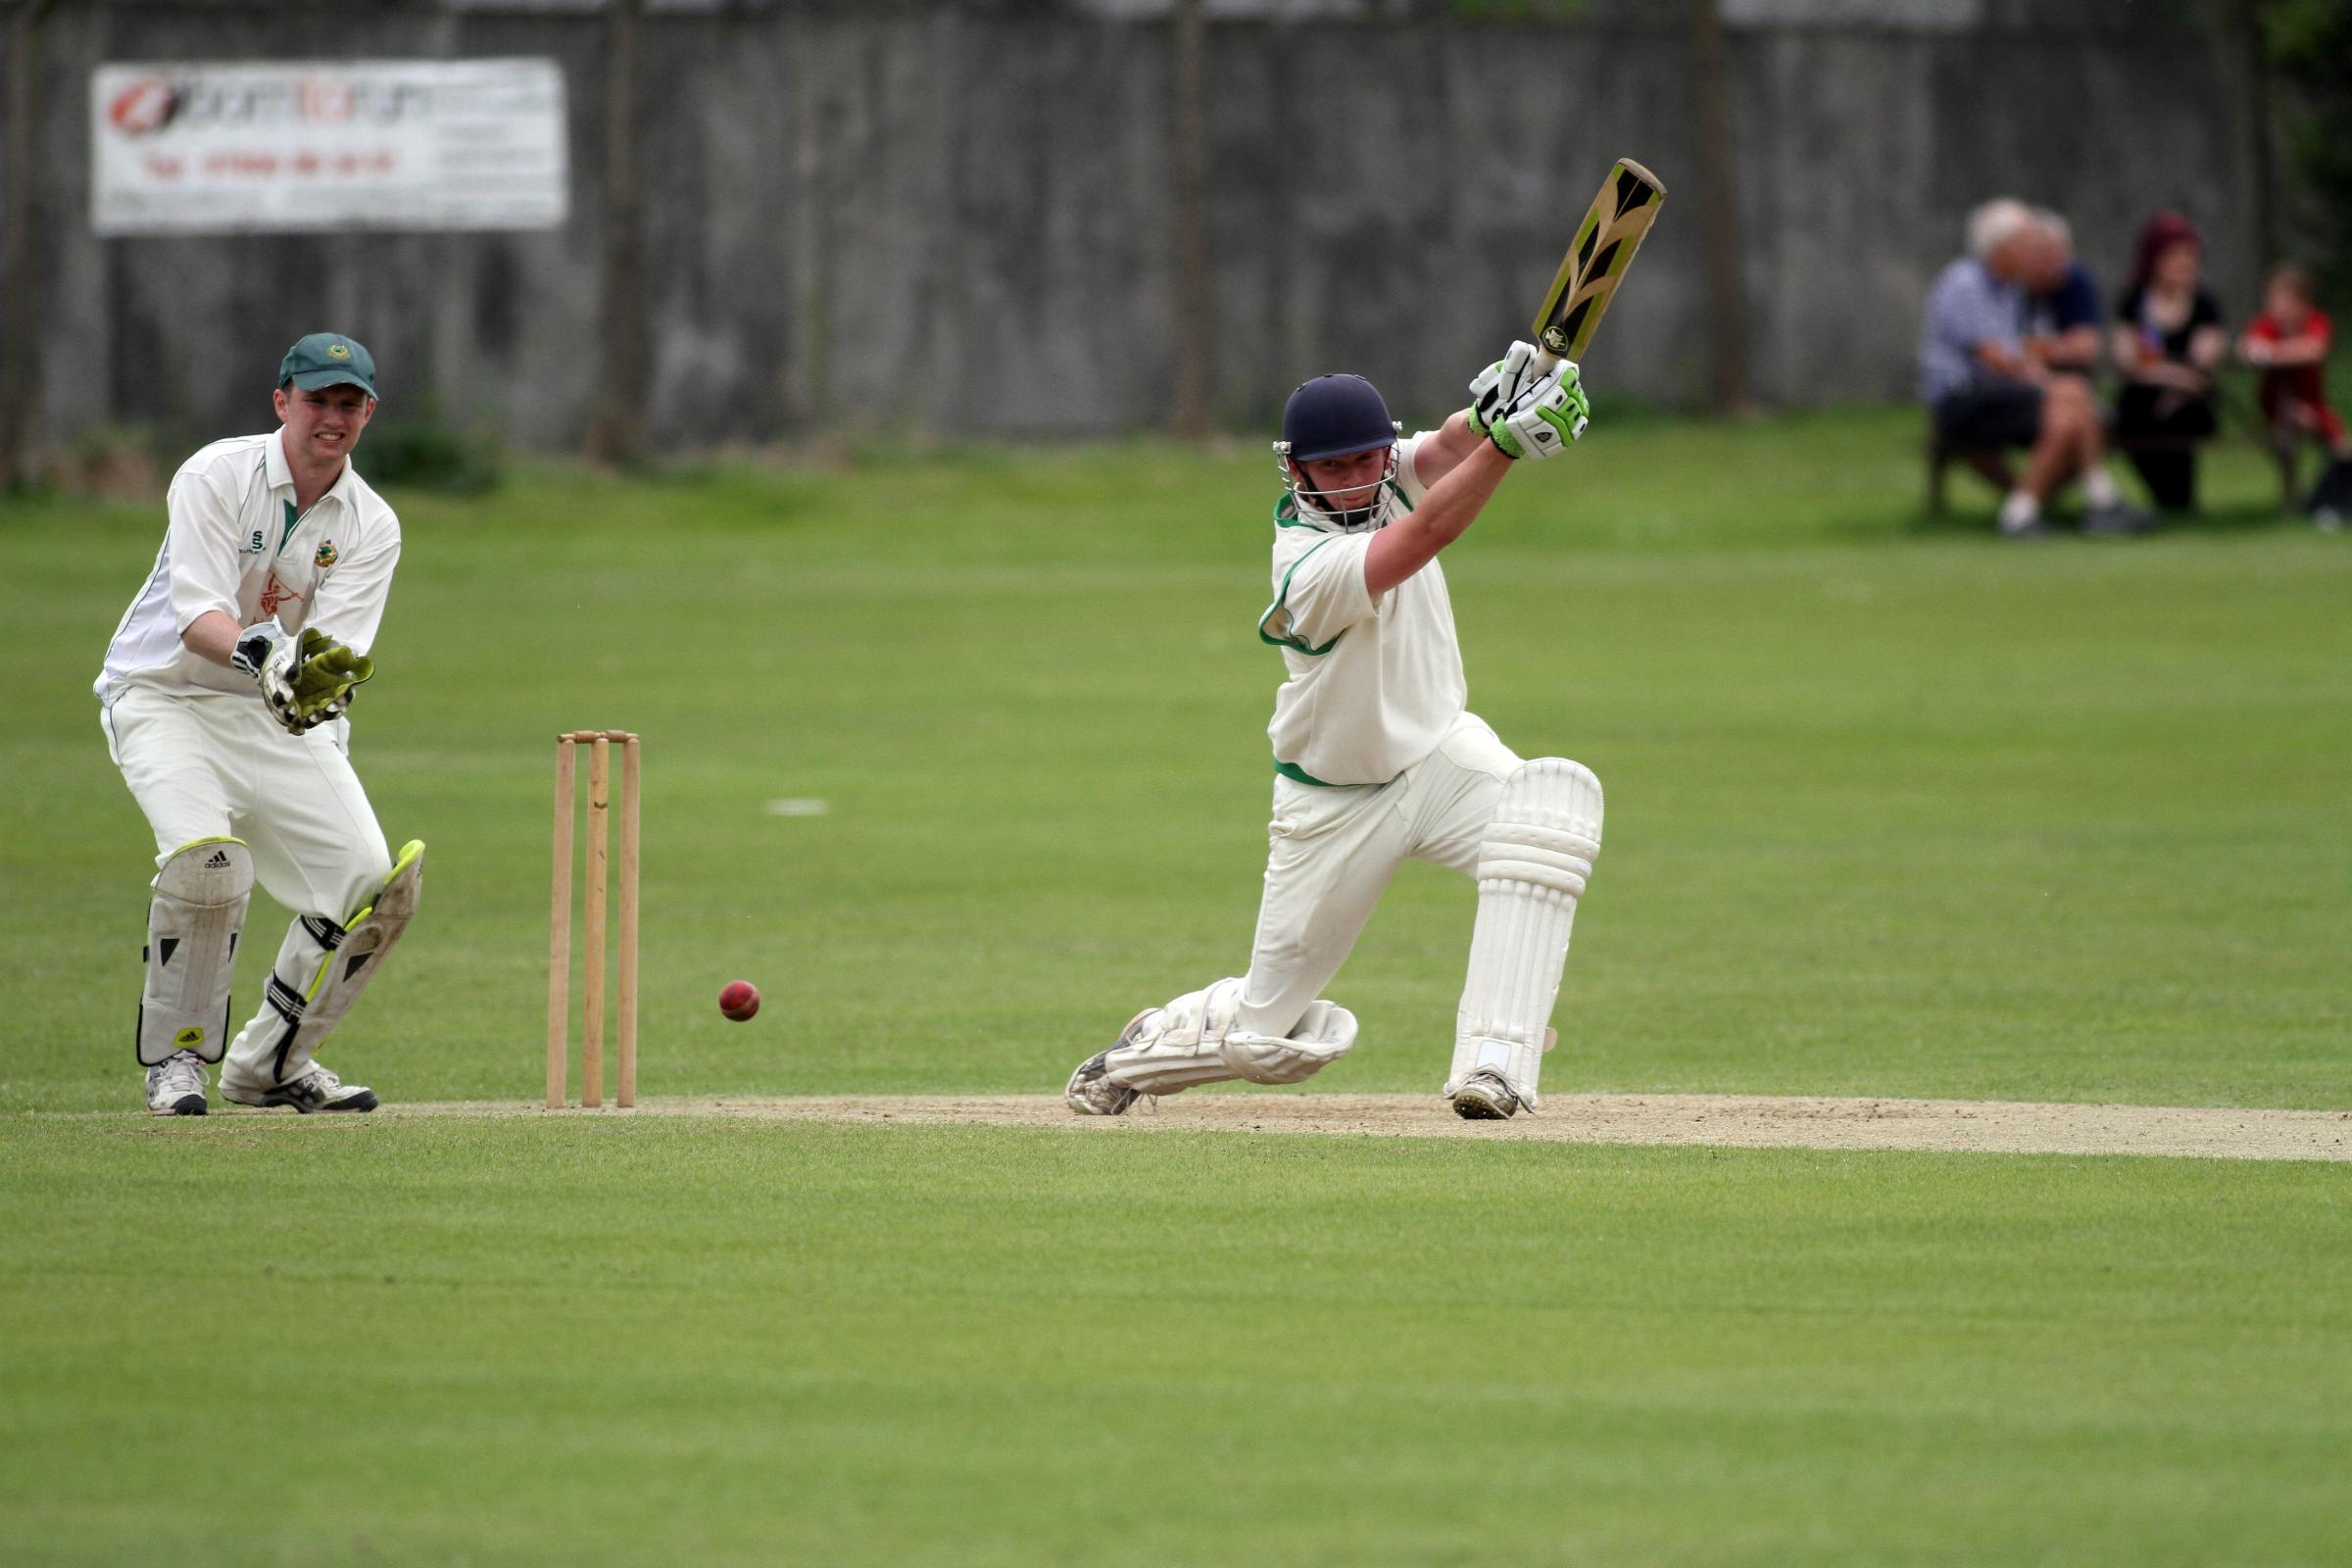 Richard Wear drives through the covers on his way  to a match-best 66 against Idle last Saturday